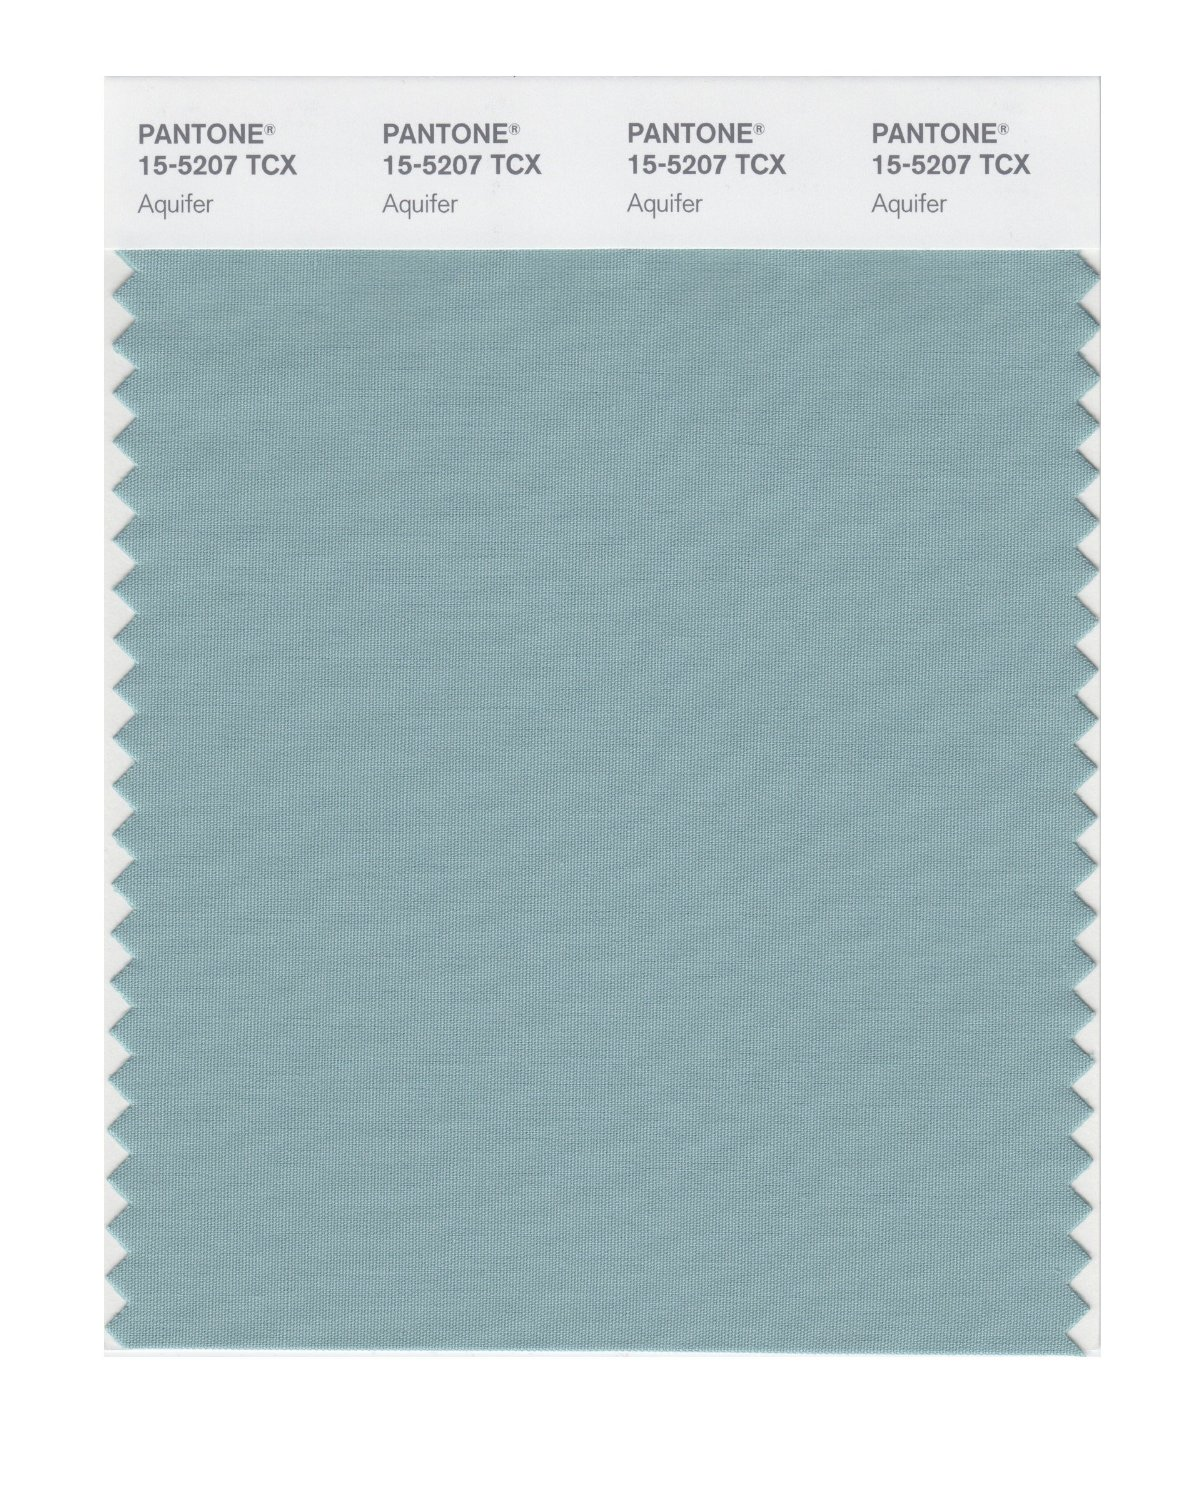 Pantone Smart Swatch 15-5207 Aquifer